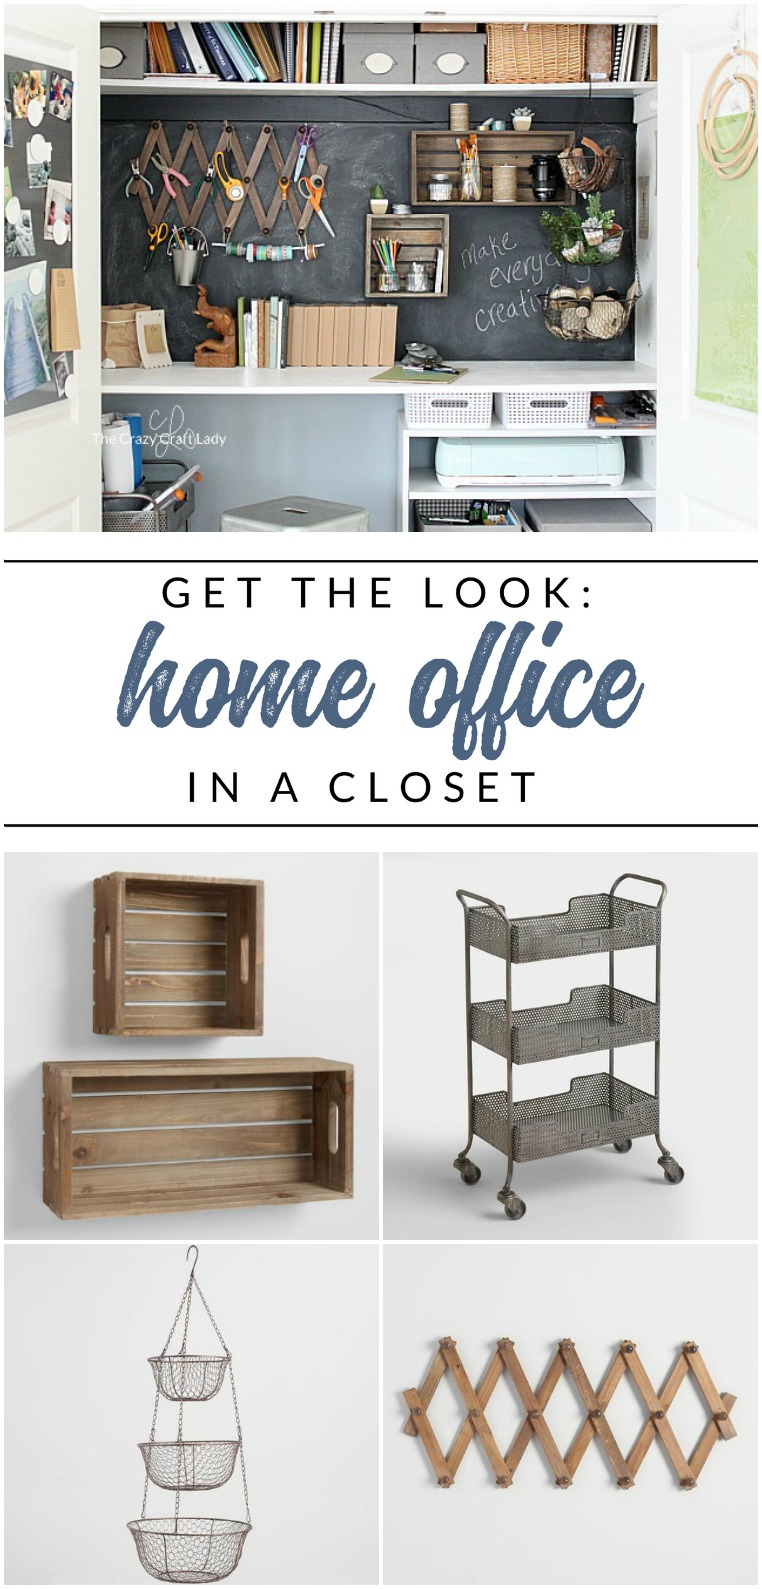 Designing a Closet Desk and Functional Home Work Space - The Crazy ...